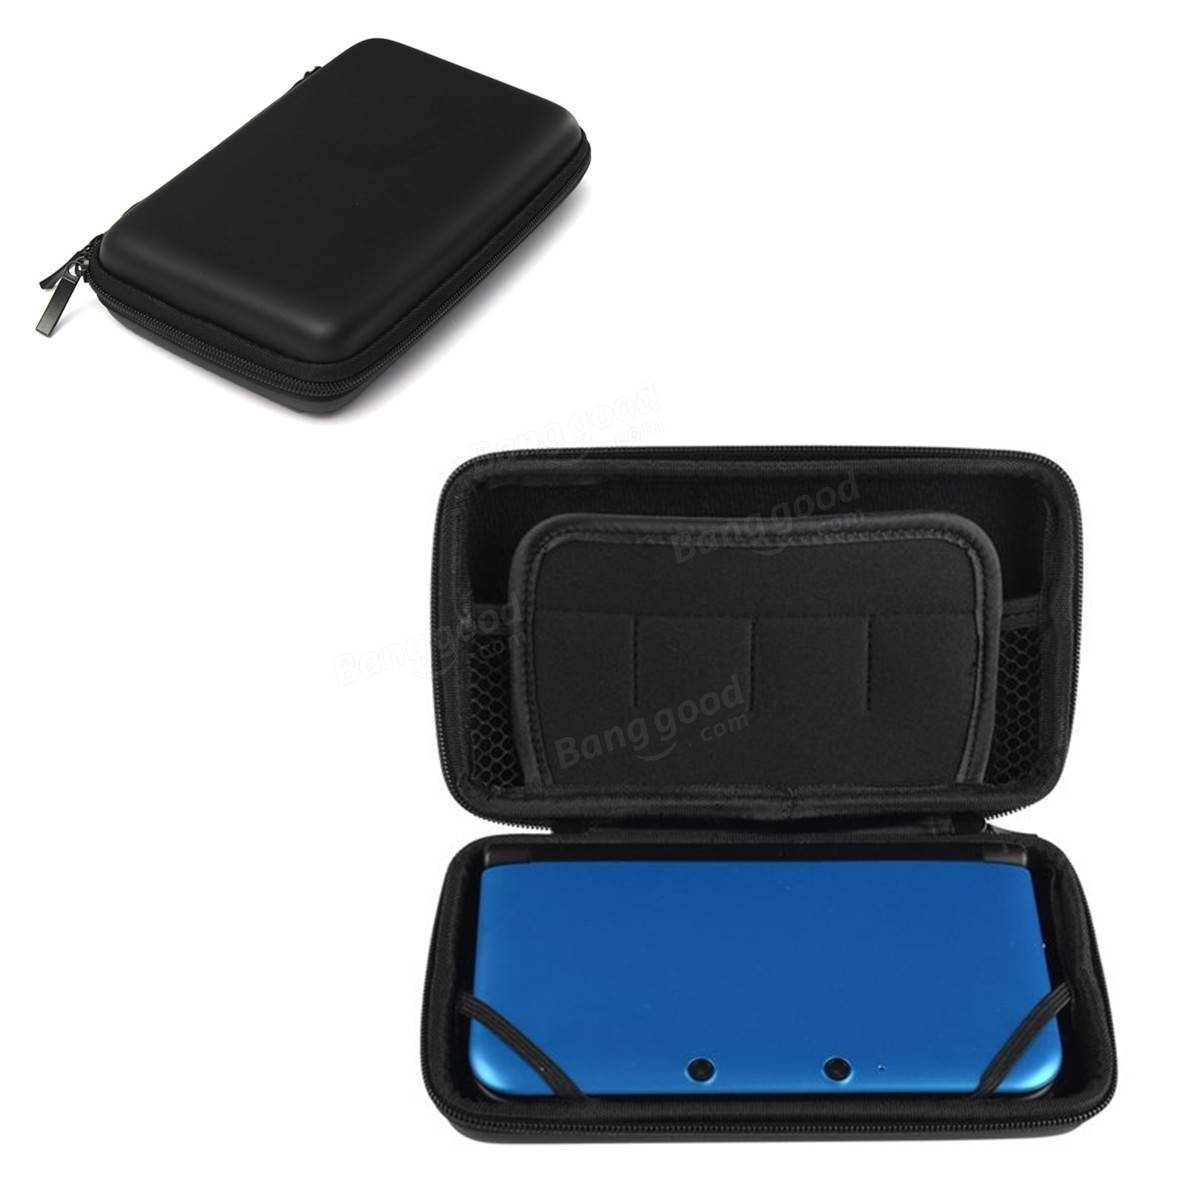 EVA Hard Case Cover Bag Carry Pouch Sleeve Protector For Nintendo 3DS XL Black